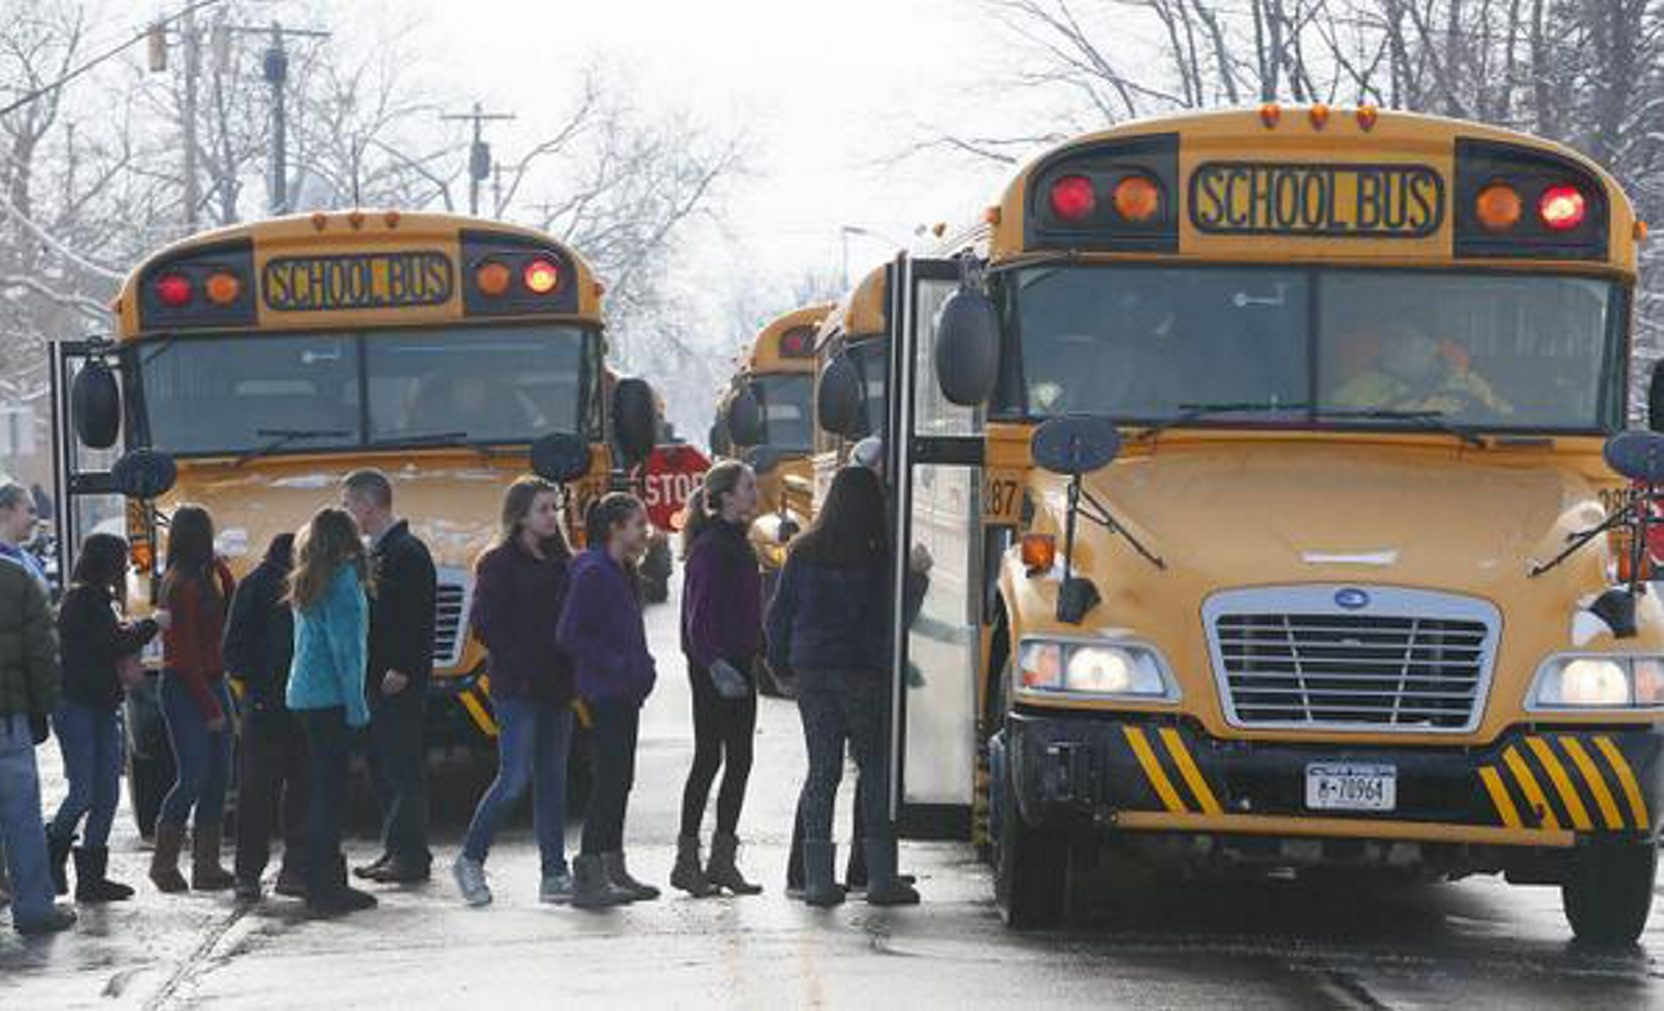 Niagara Wheatfield students board buses at the Sanborn Fire Hall to return to school after an evacuation Monday. (Derek Gee/Buffalo News)